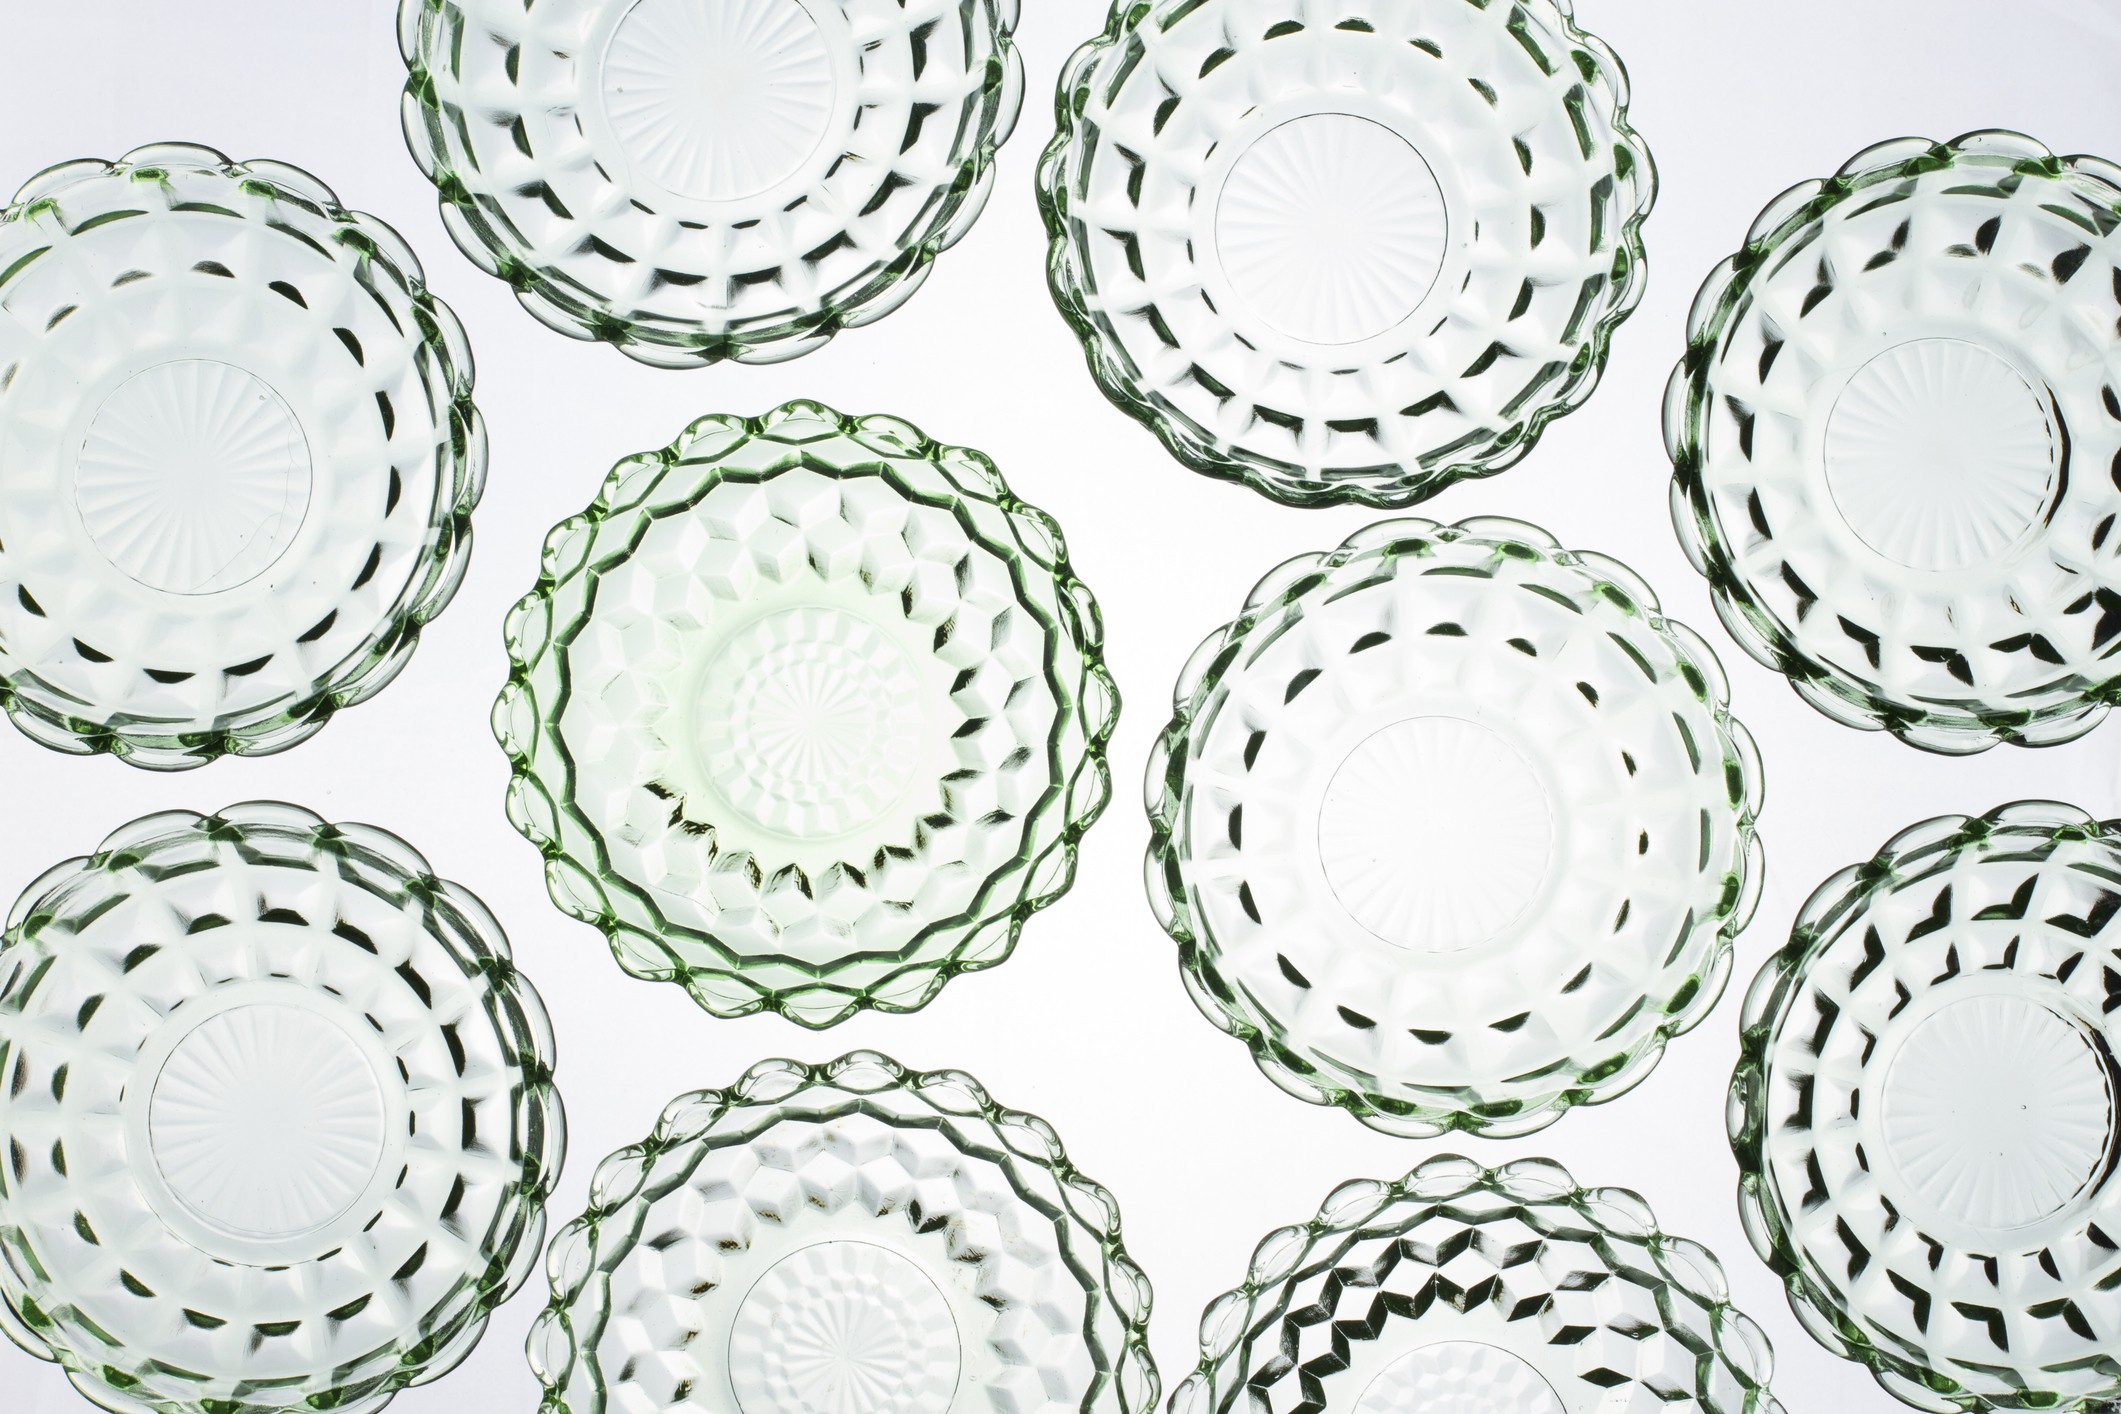 Green Depression glass bowls, back lit, shot from above to form an abstract pattern.